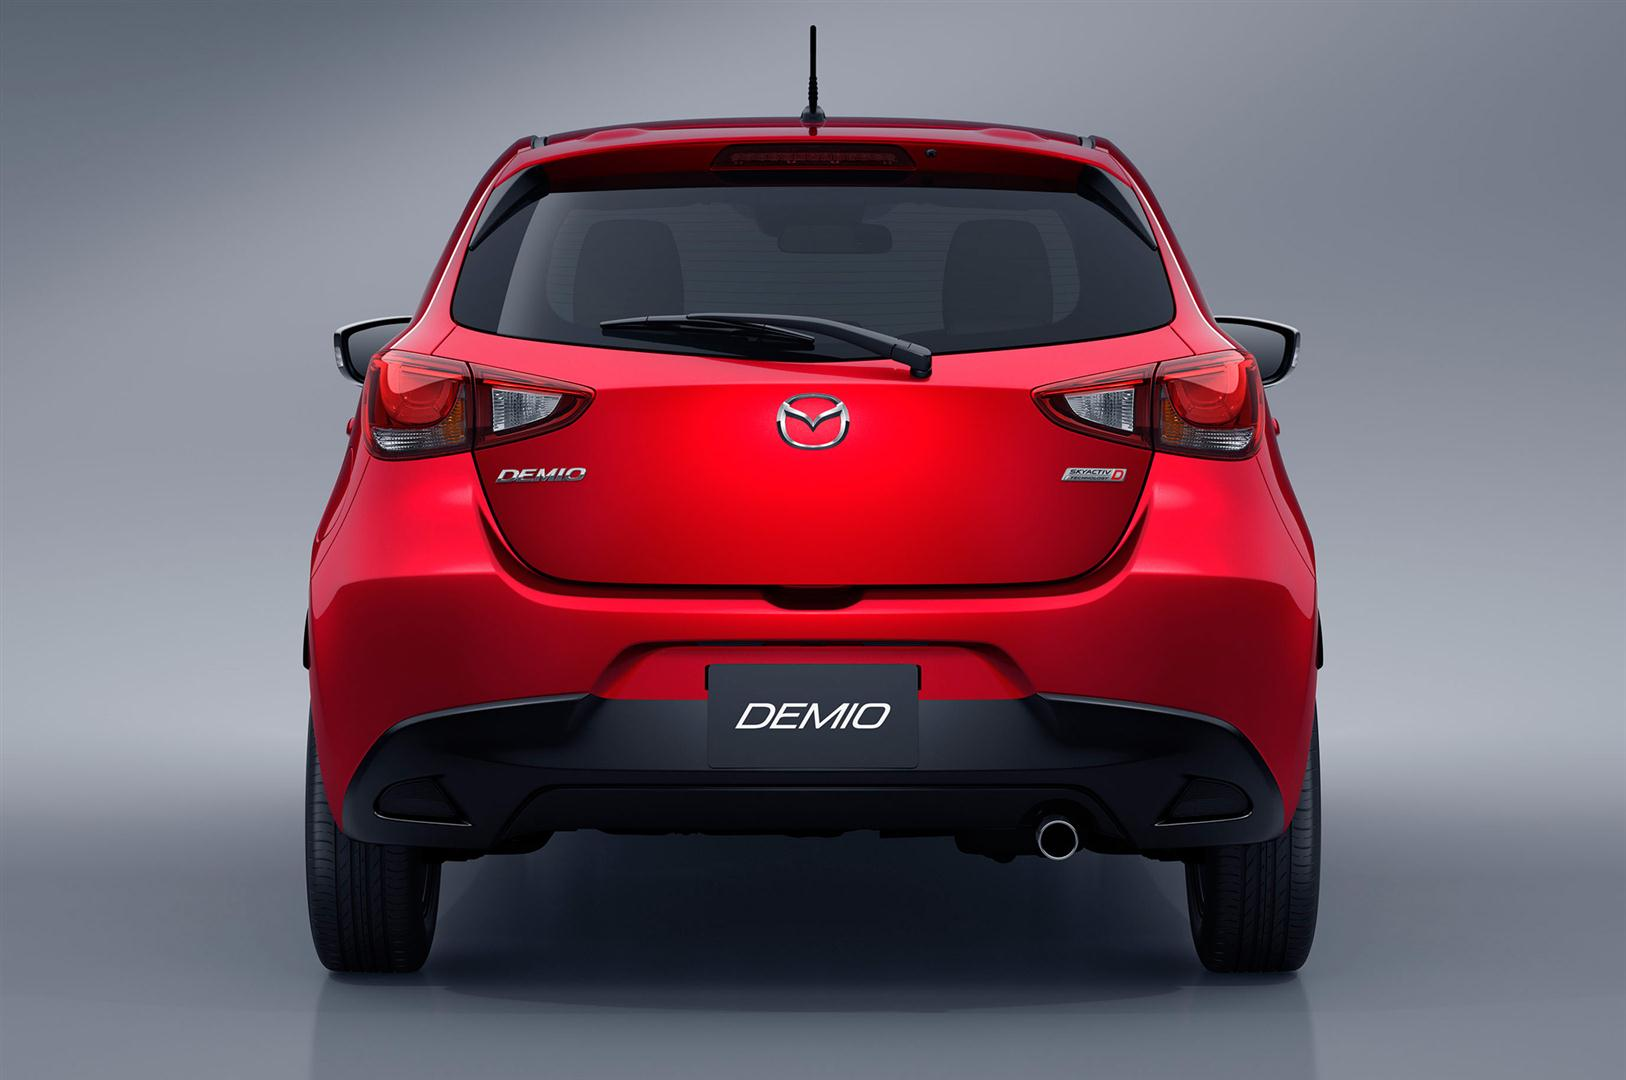 2018 Mazda 2 Redesign changes